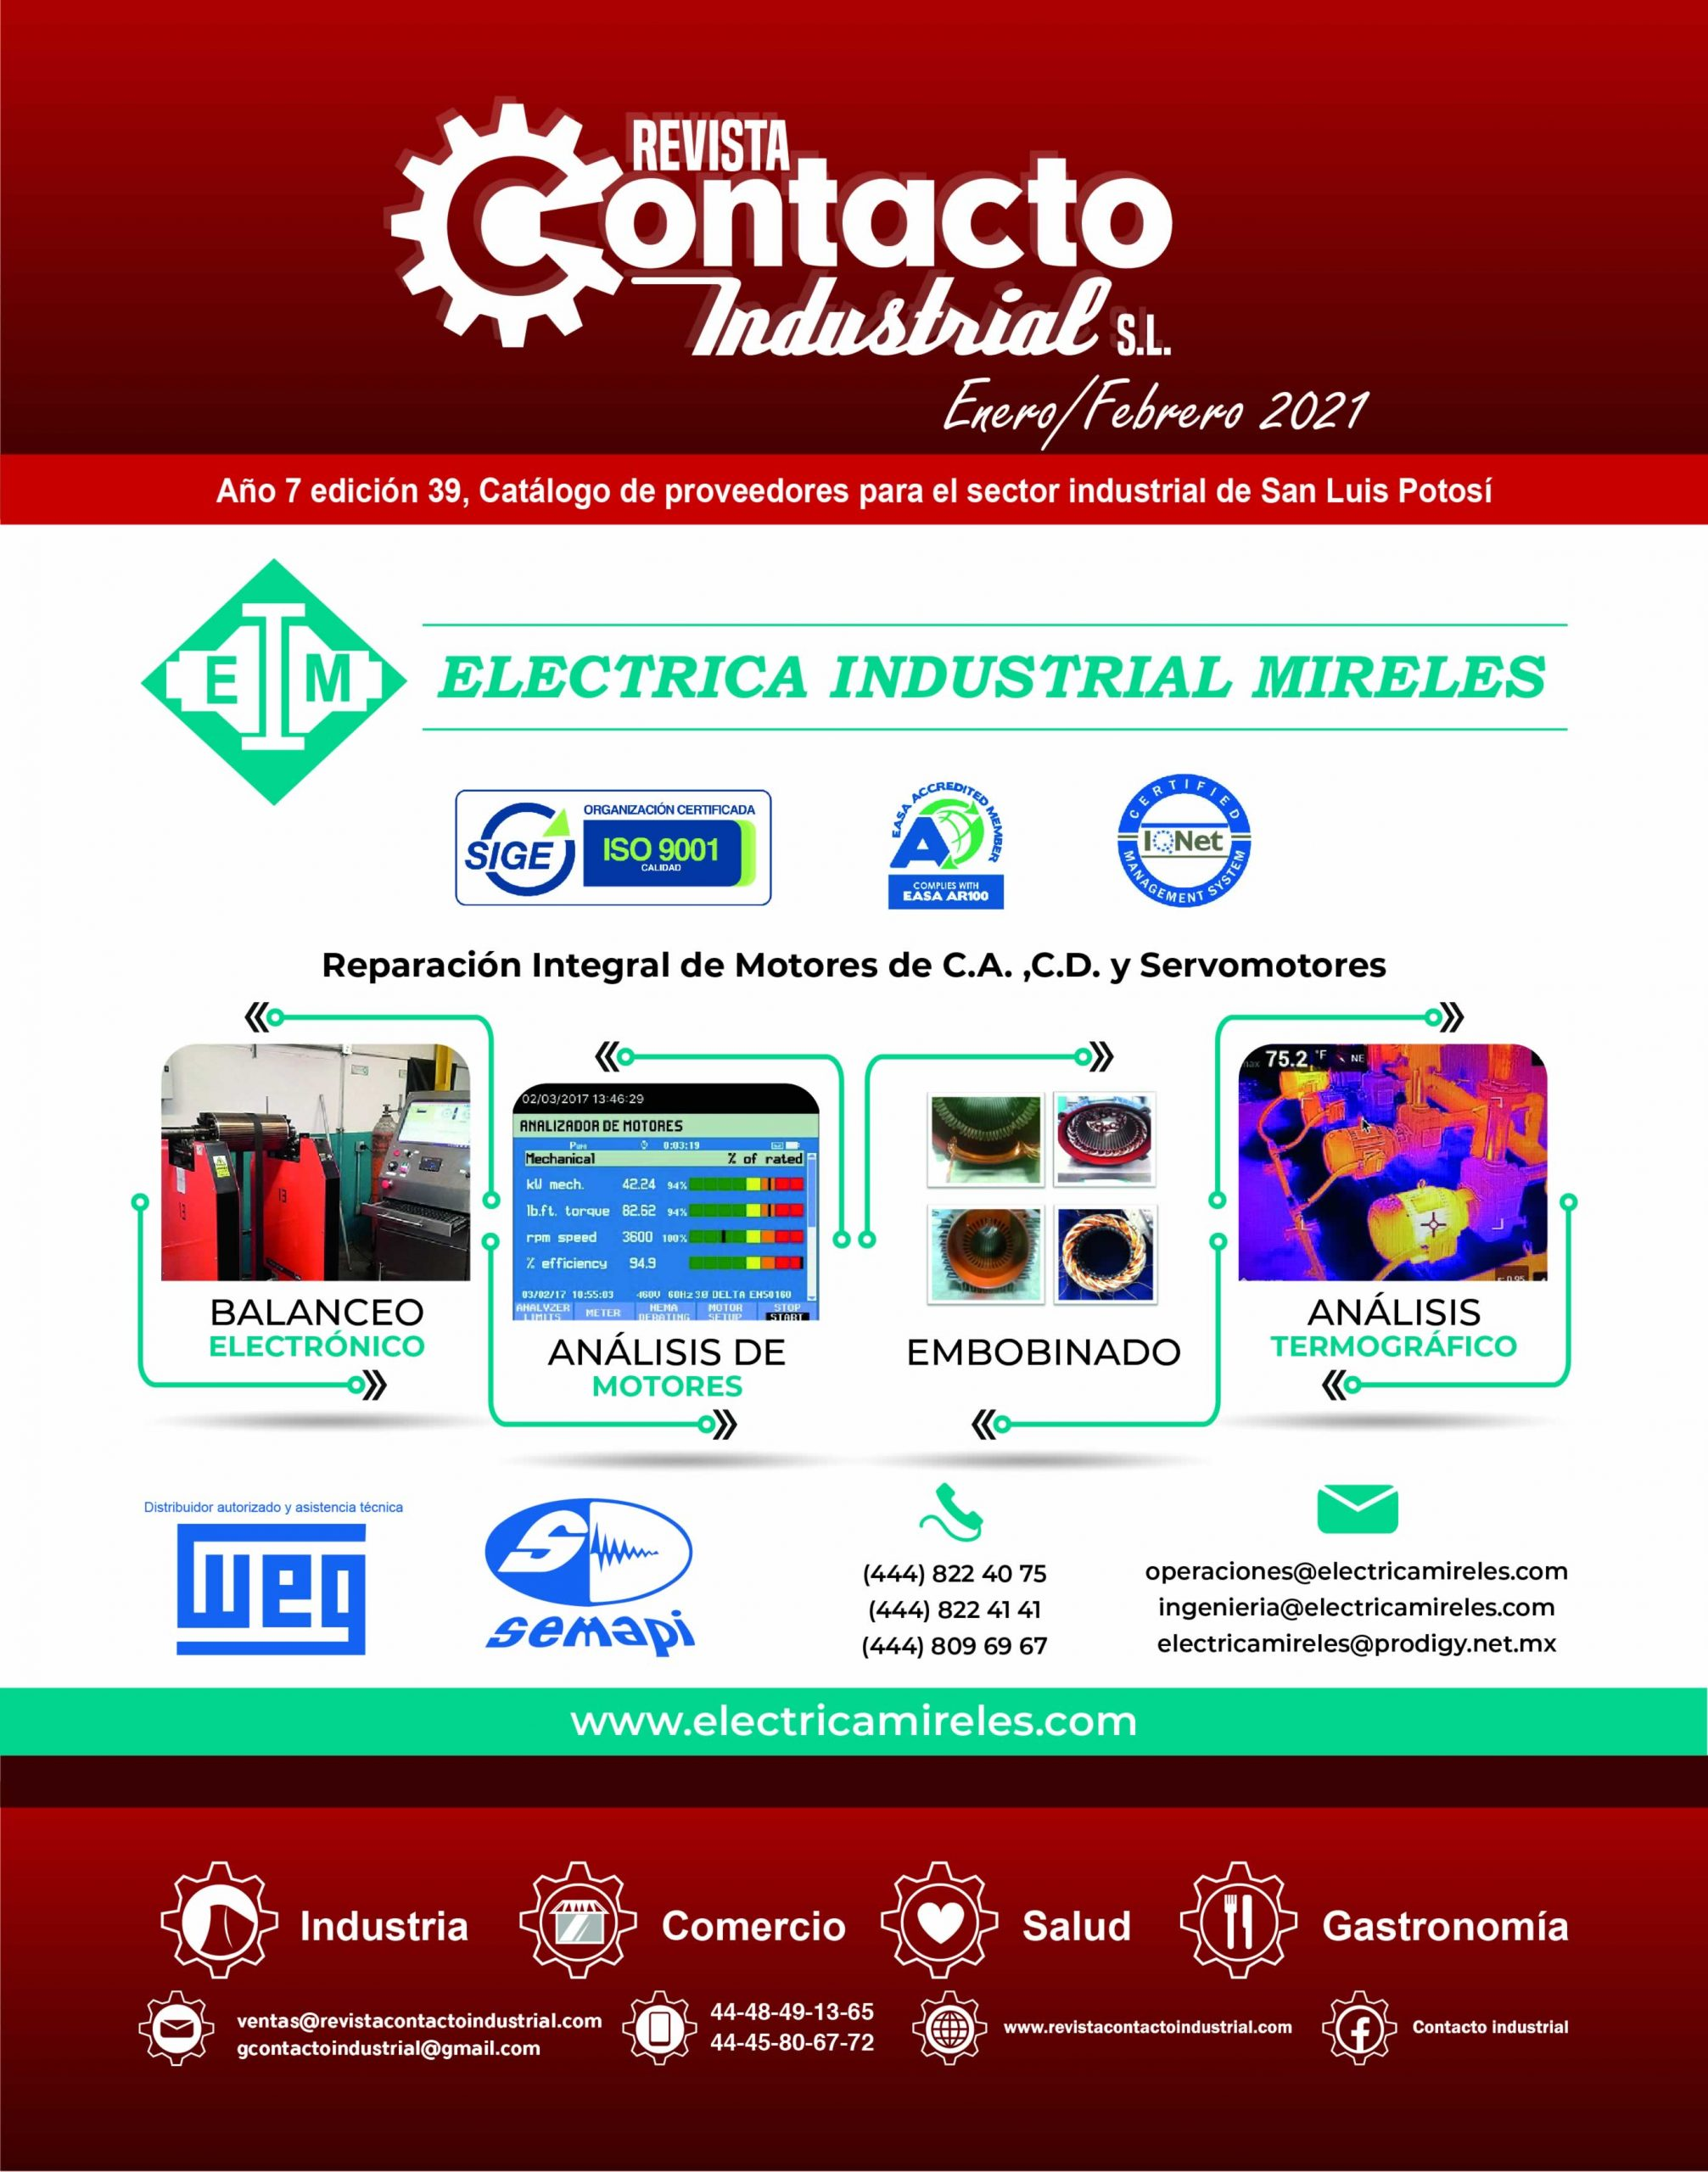 electrica-industrial-mireles--plan-de-marketing-muy-interesante-revista-revista-contacto-industrial